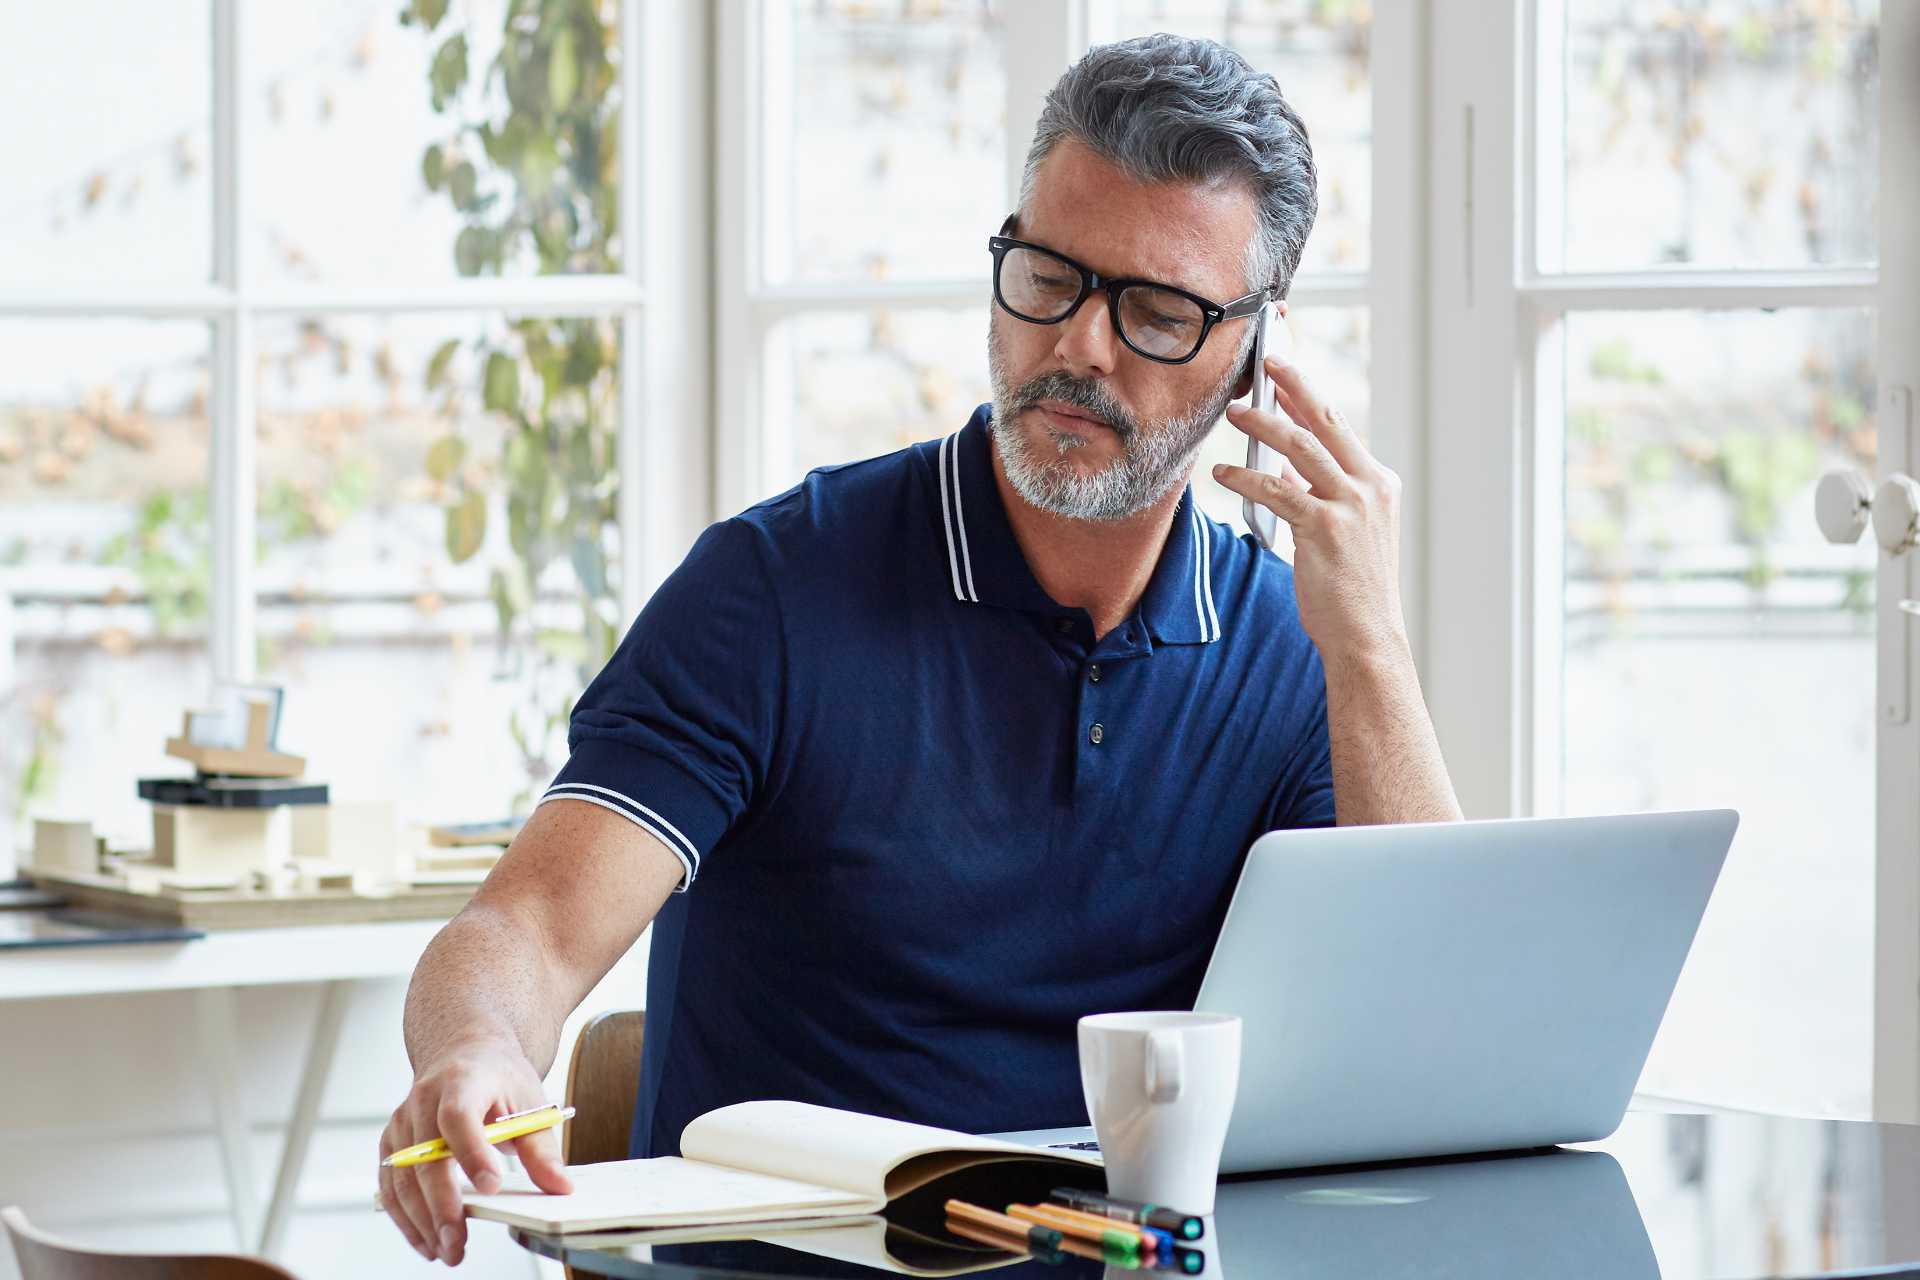 Mature man on laptop and phone